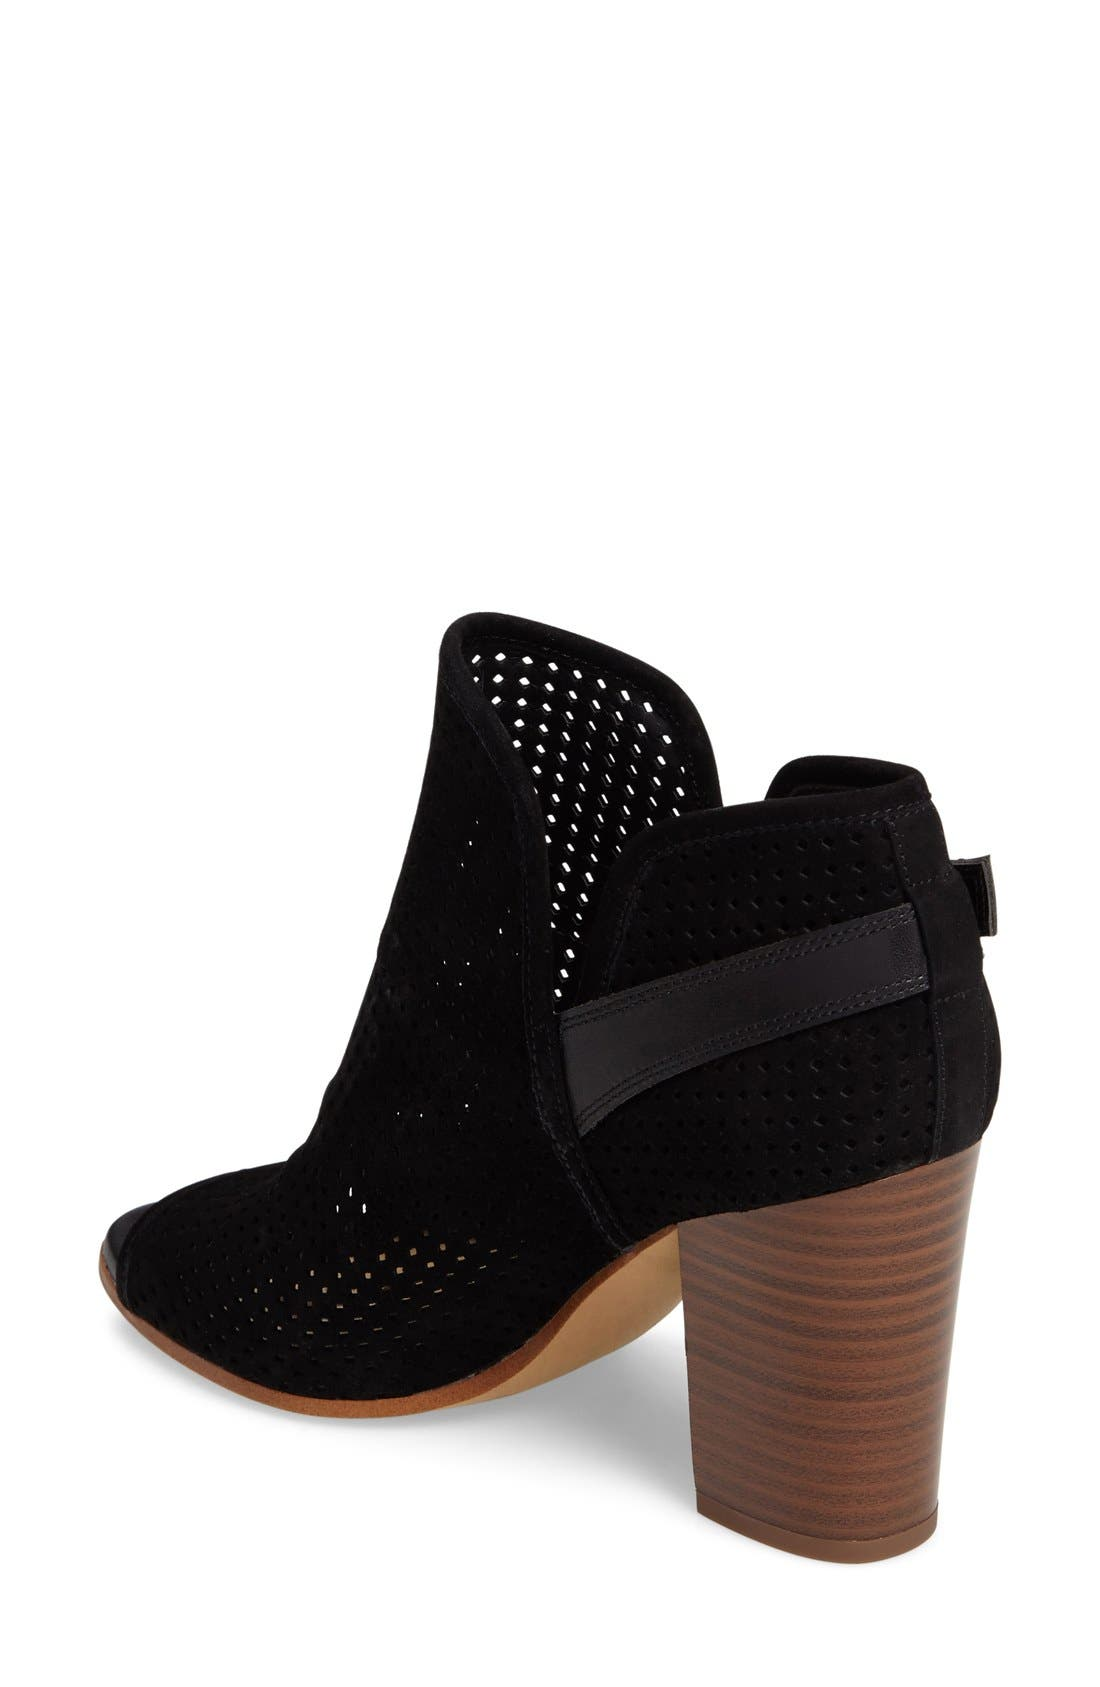 Alternate Image 2  - Sam Edelman Easton Perforated Open Toe Bootie (Women)